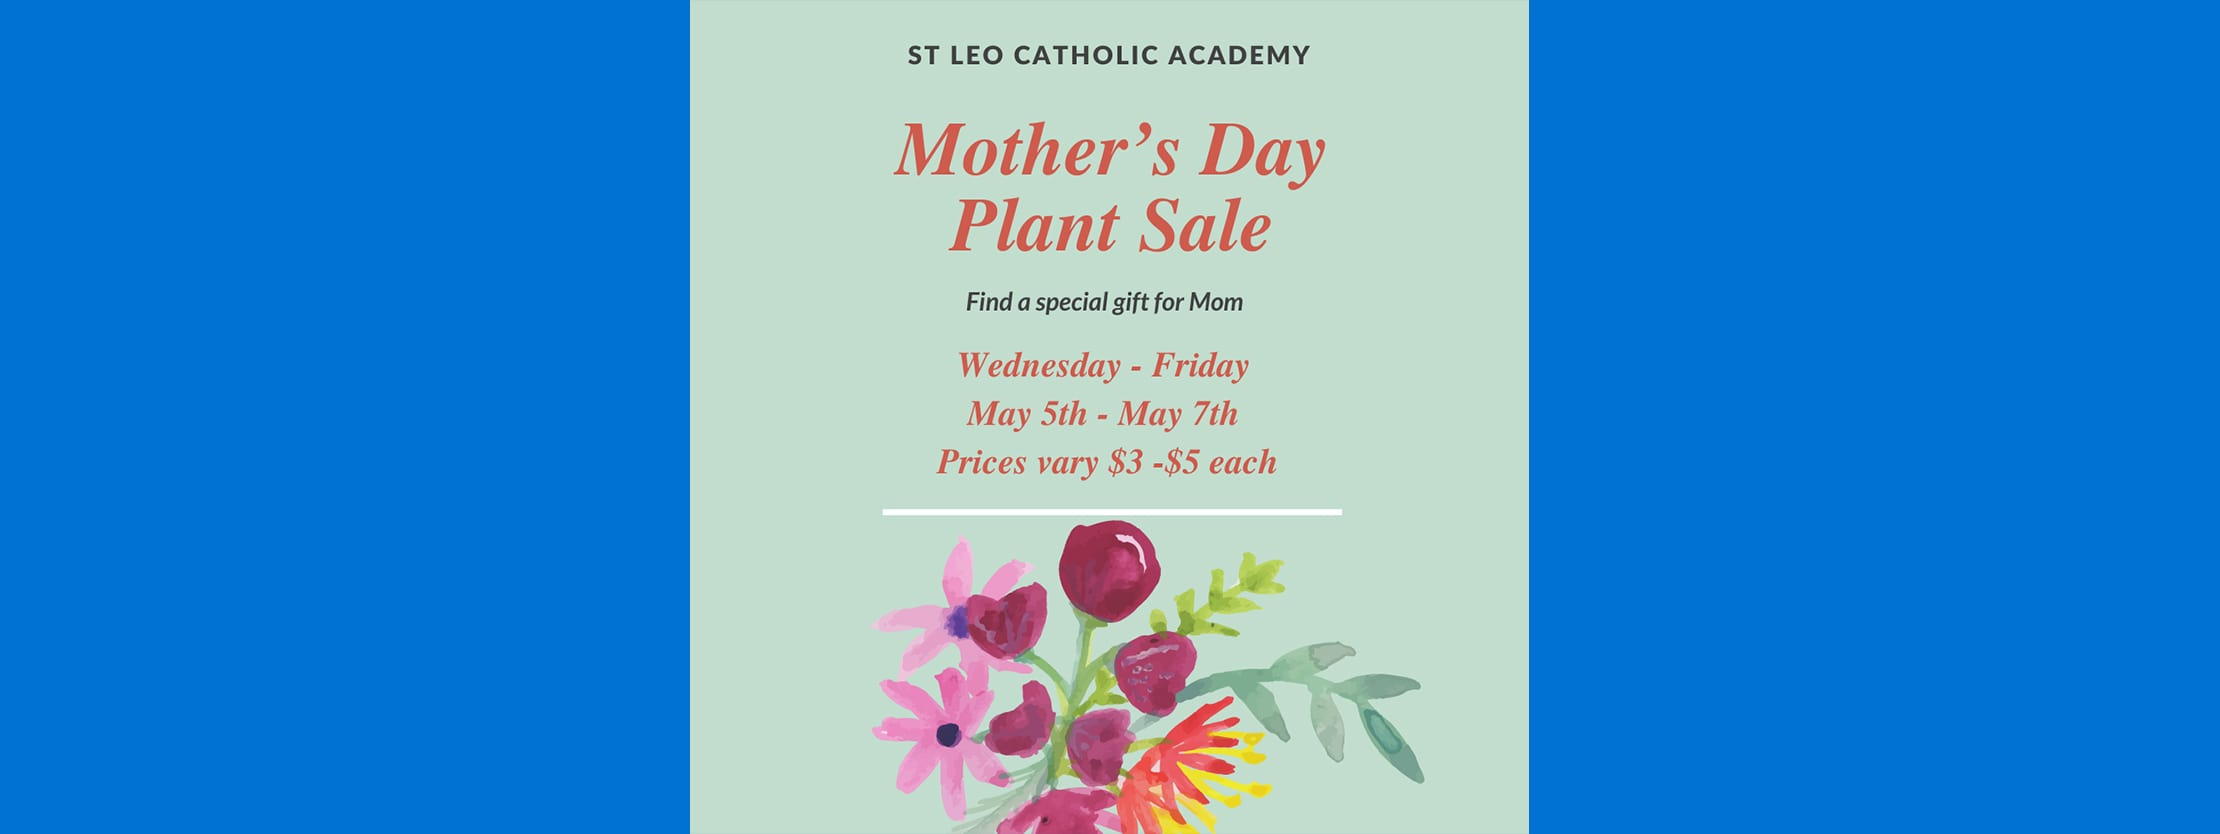 mother's day plant sale 2021